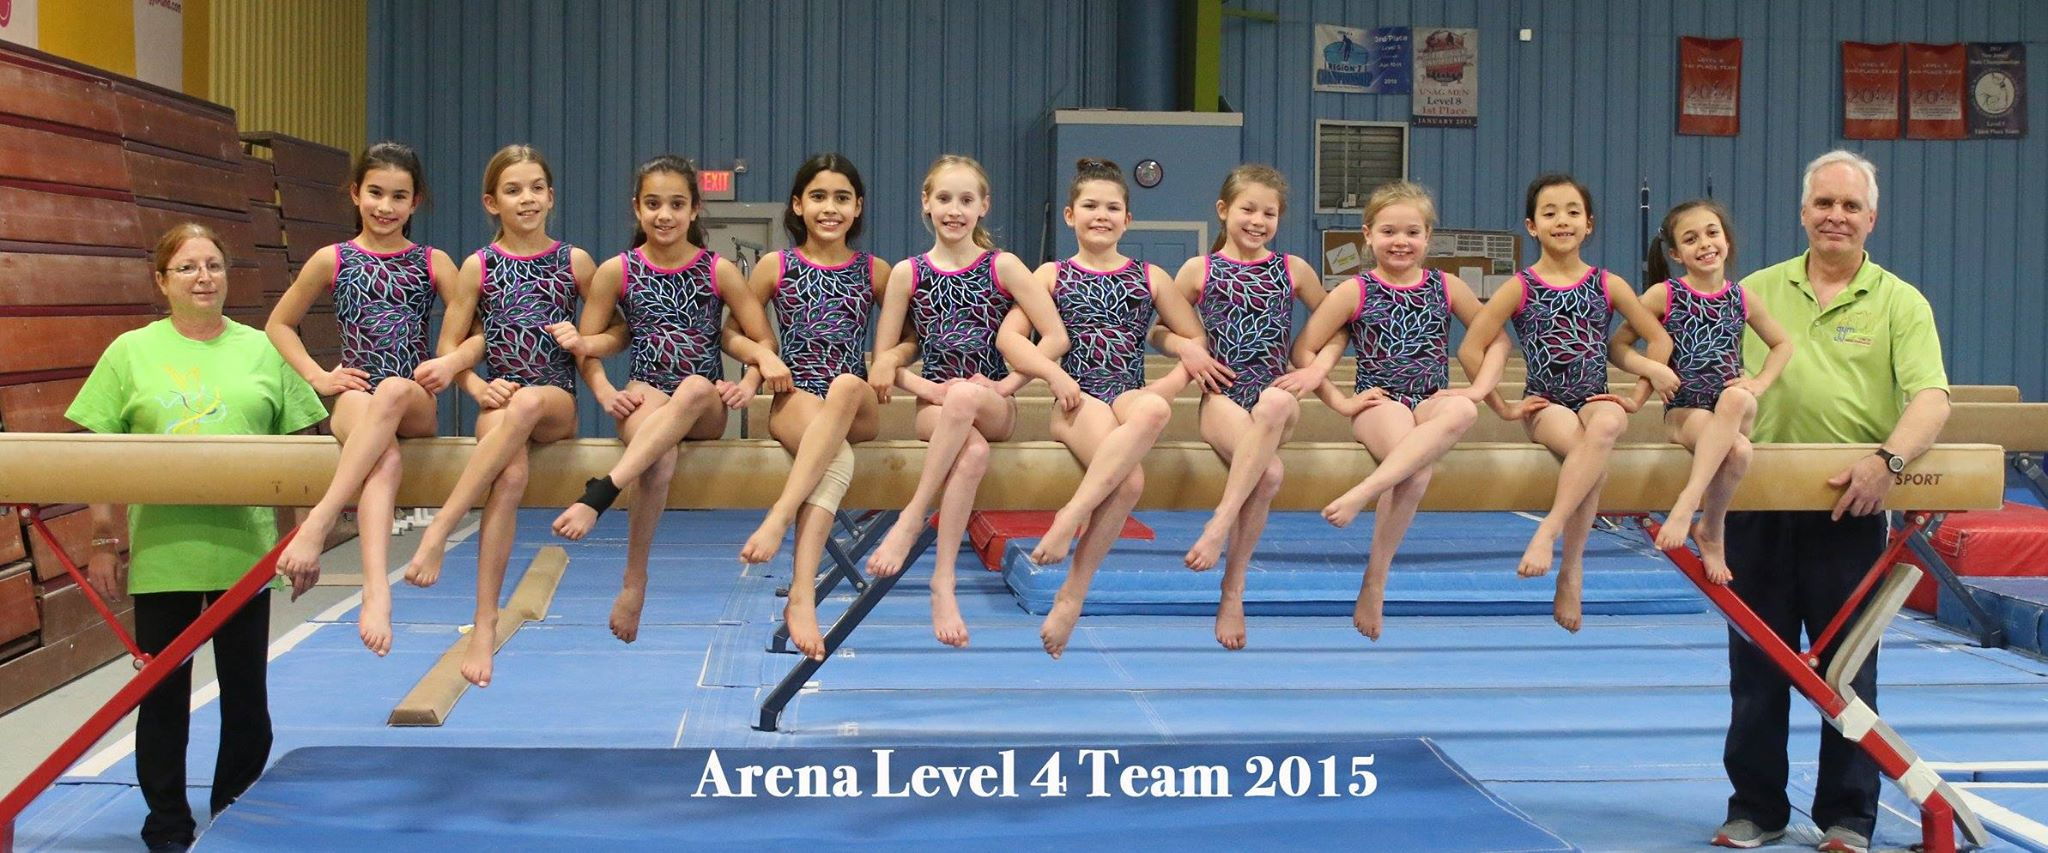 Arena's 2015 Level 4 Team Members with Coaches - Ms. Mary Ann Hawk & Mr. Rick Logue